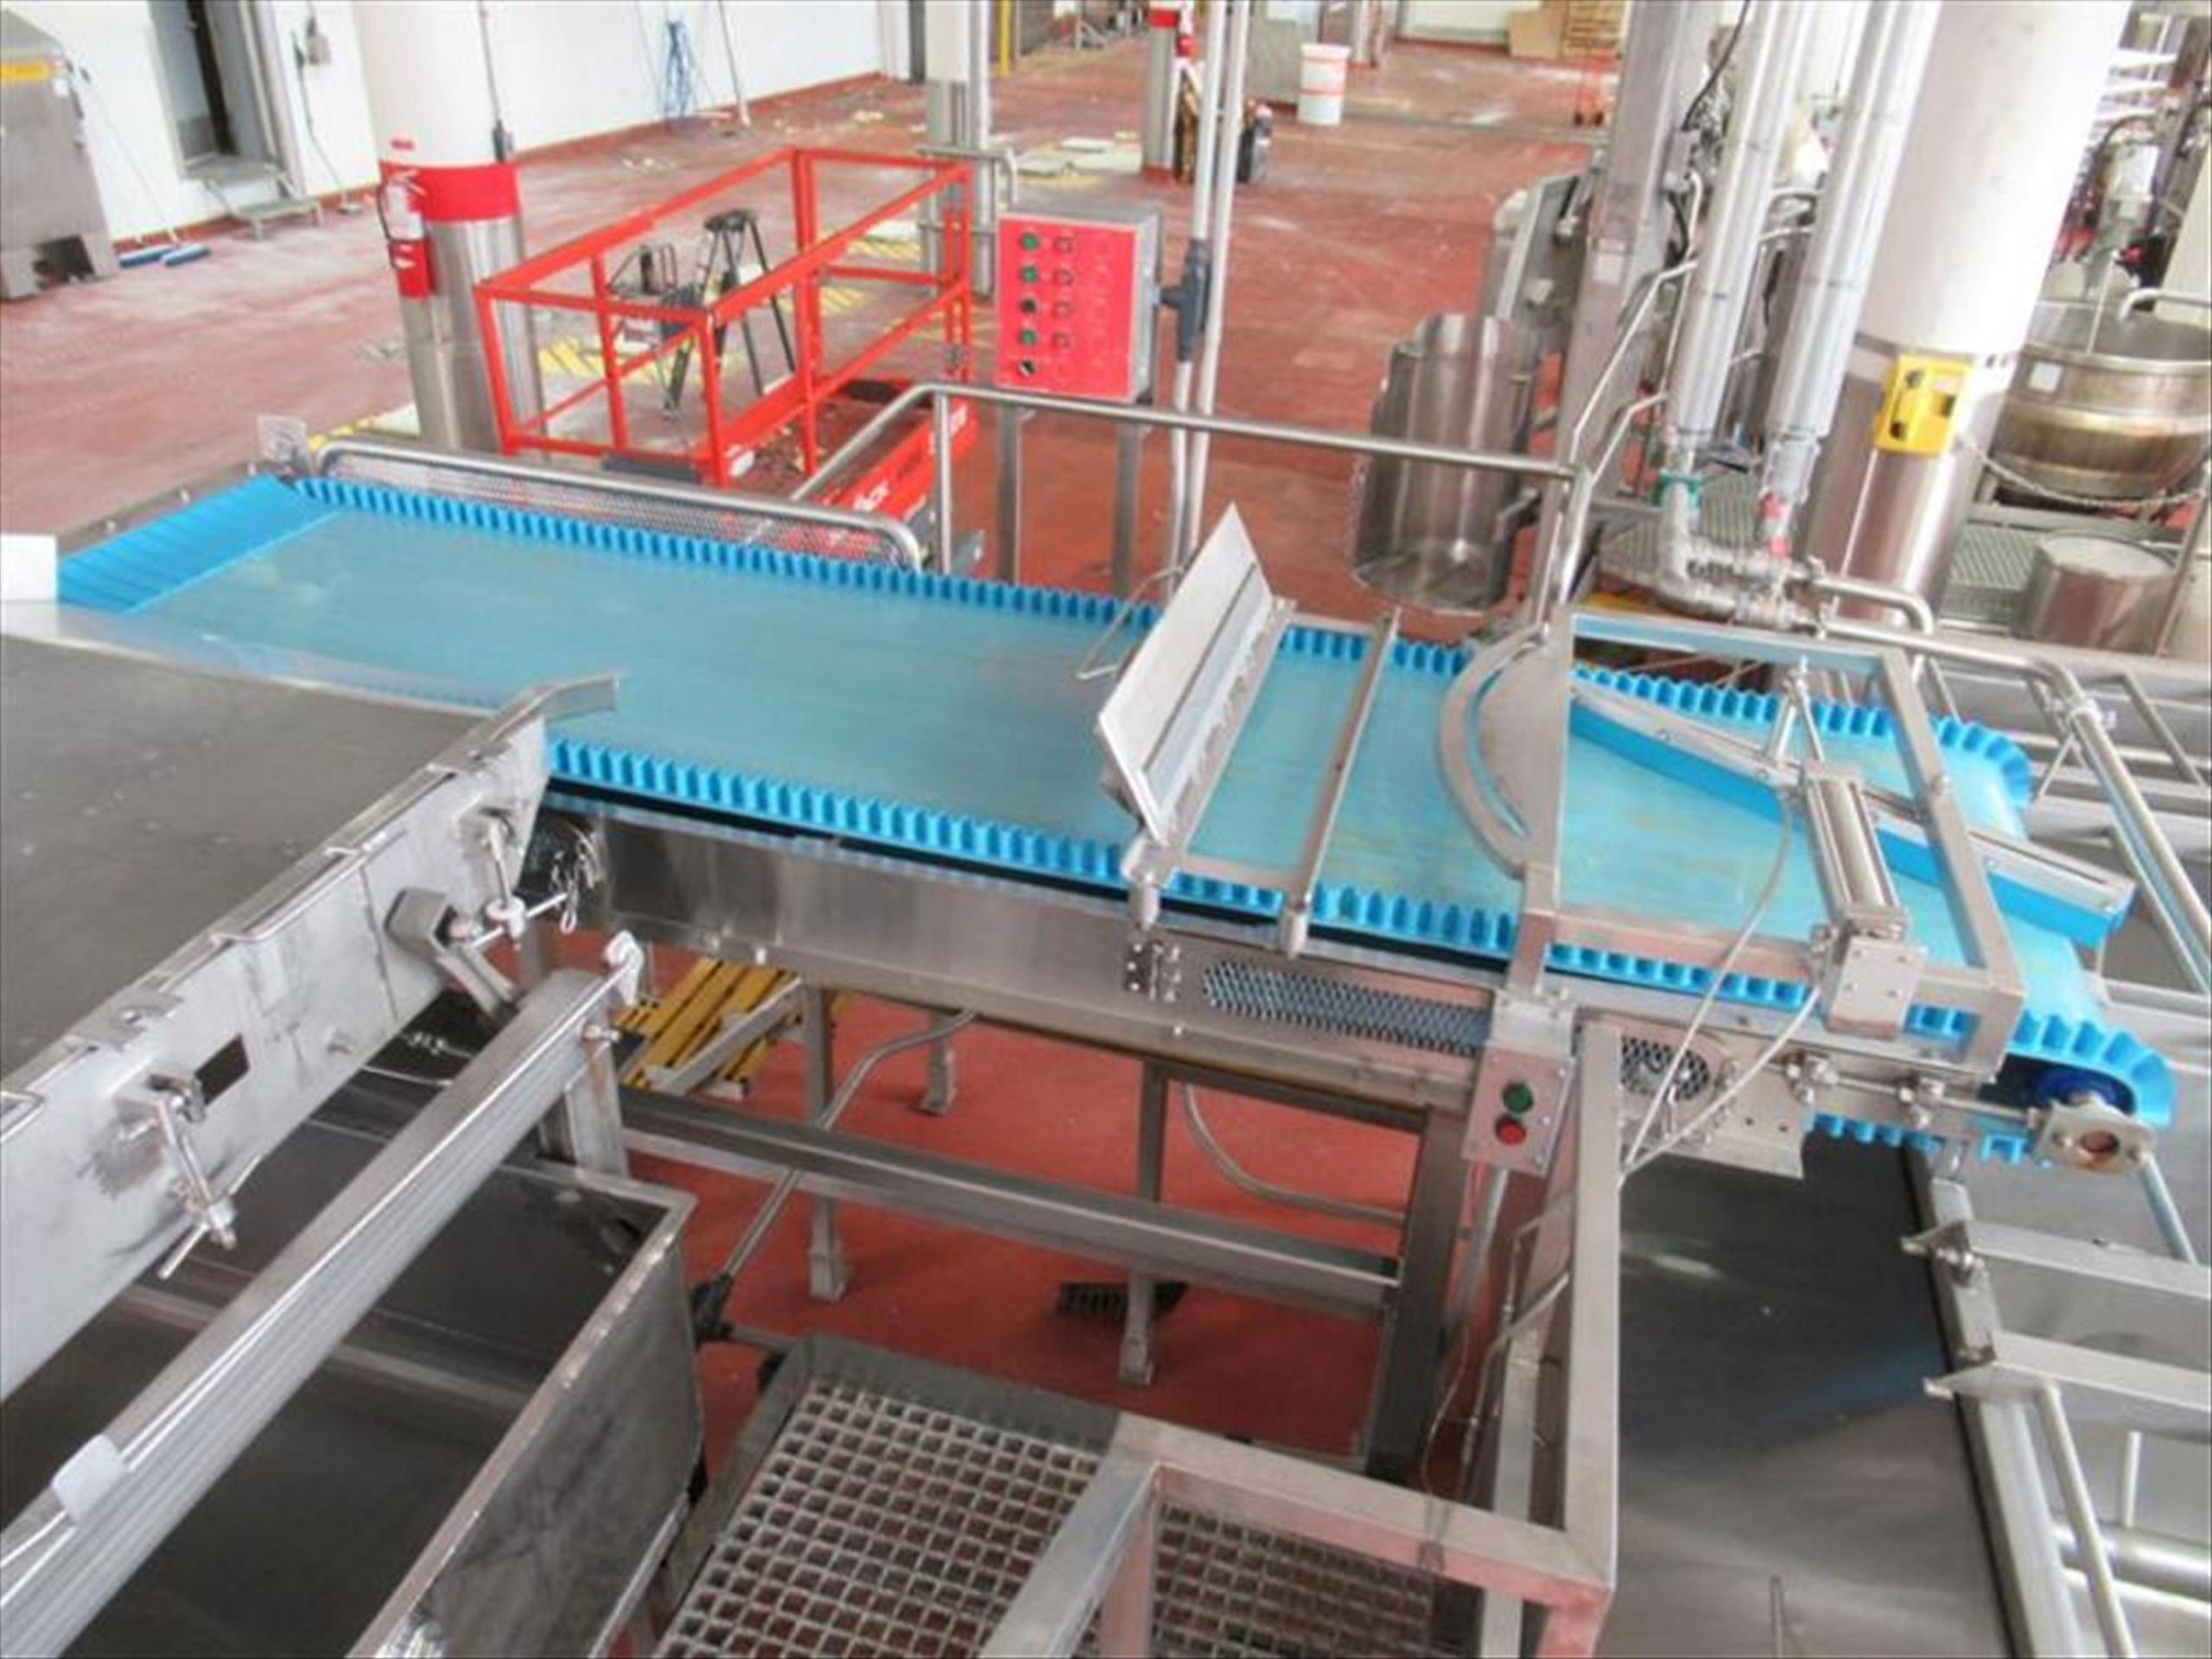 Rubber belt conveyor with magnet approx 30 in w x 120 in l inspection belt conveyor with PVC